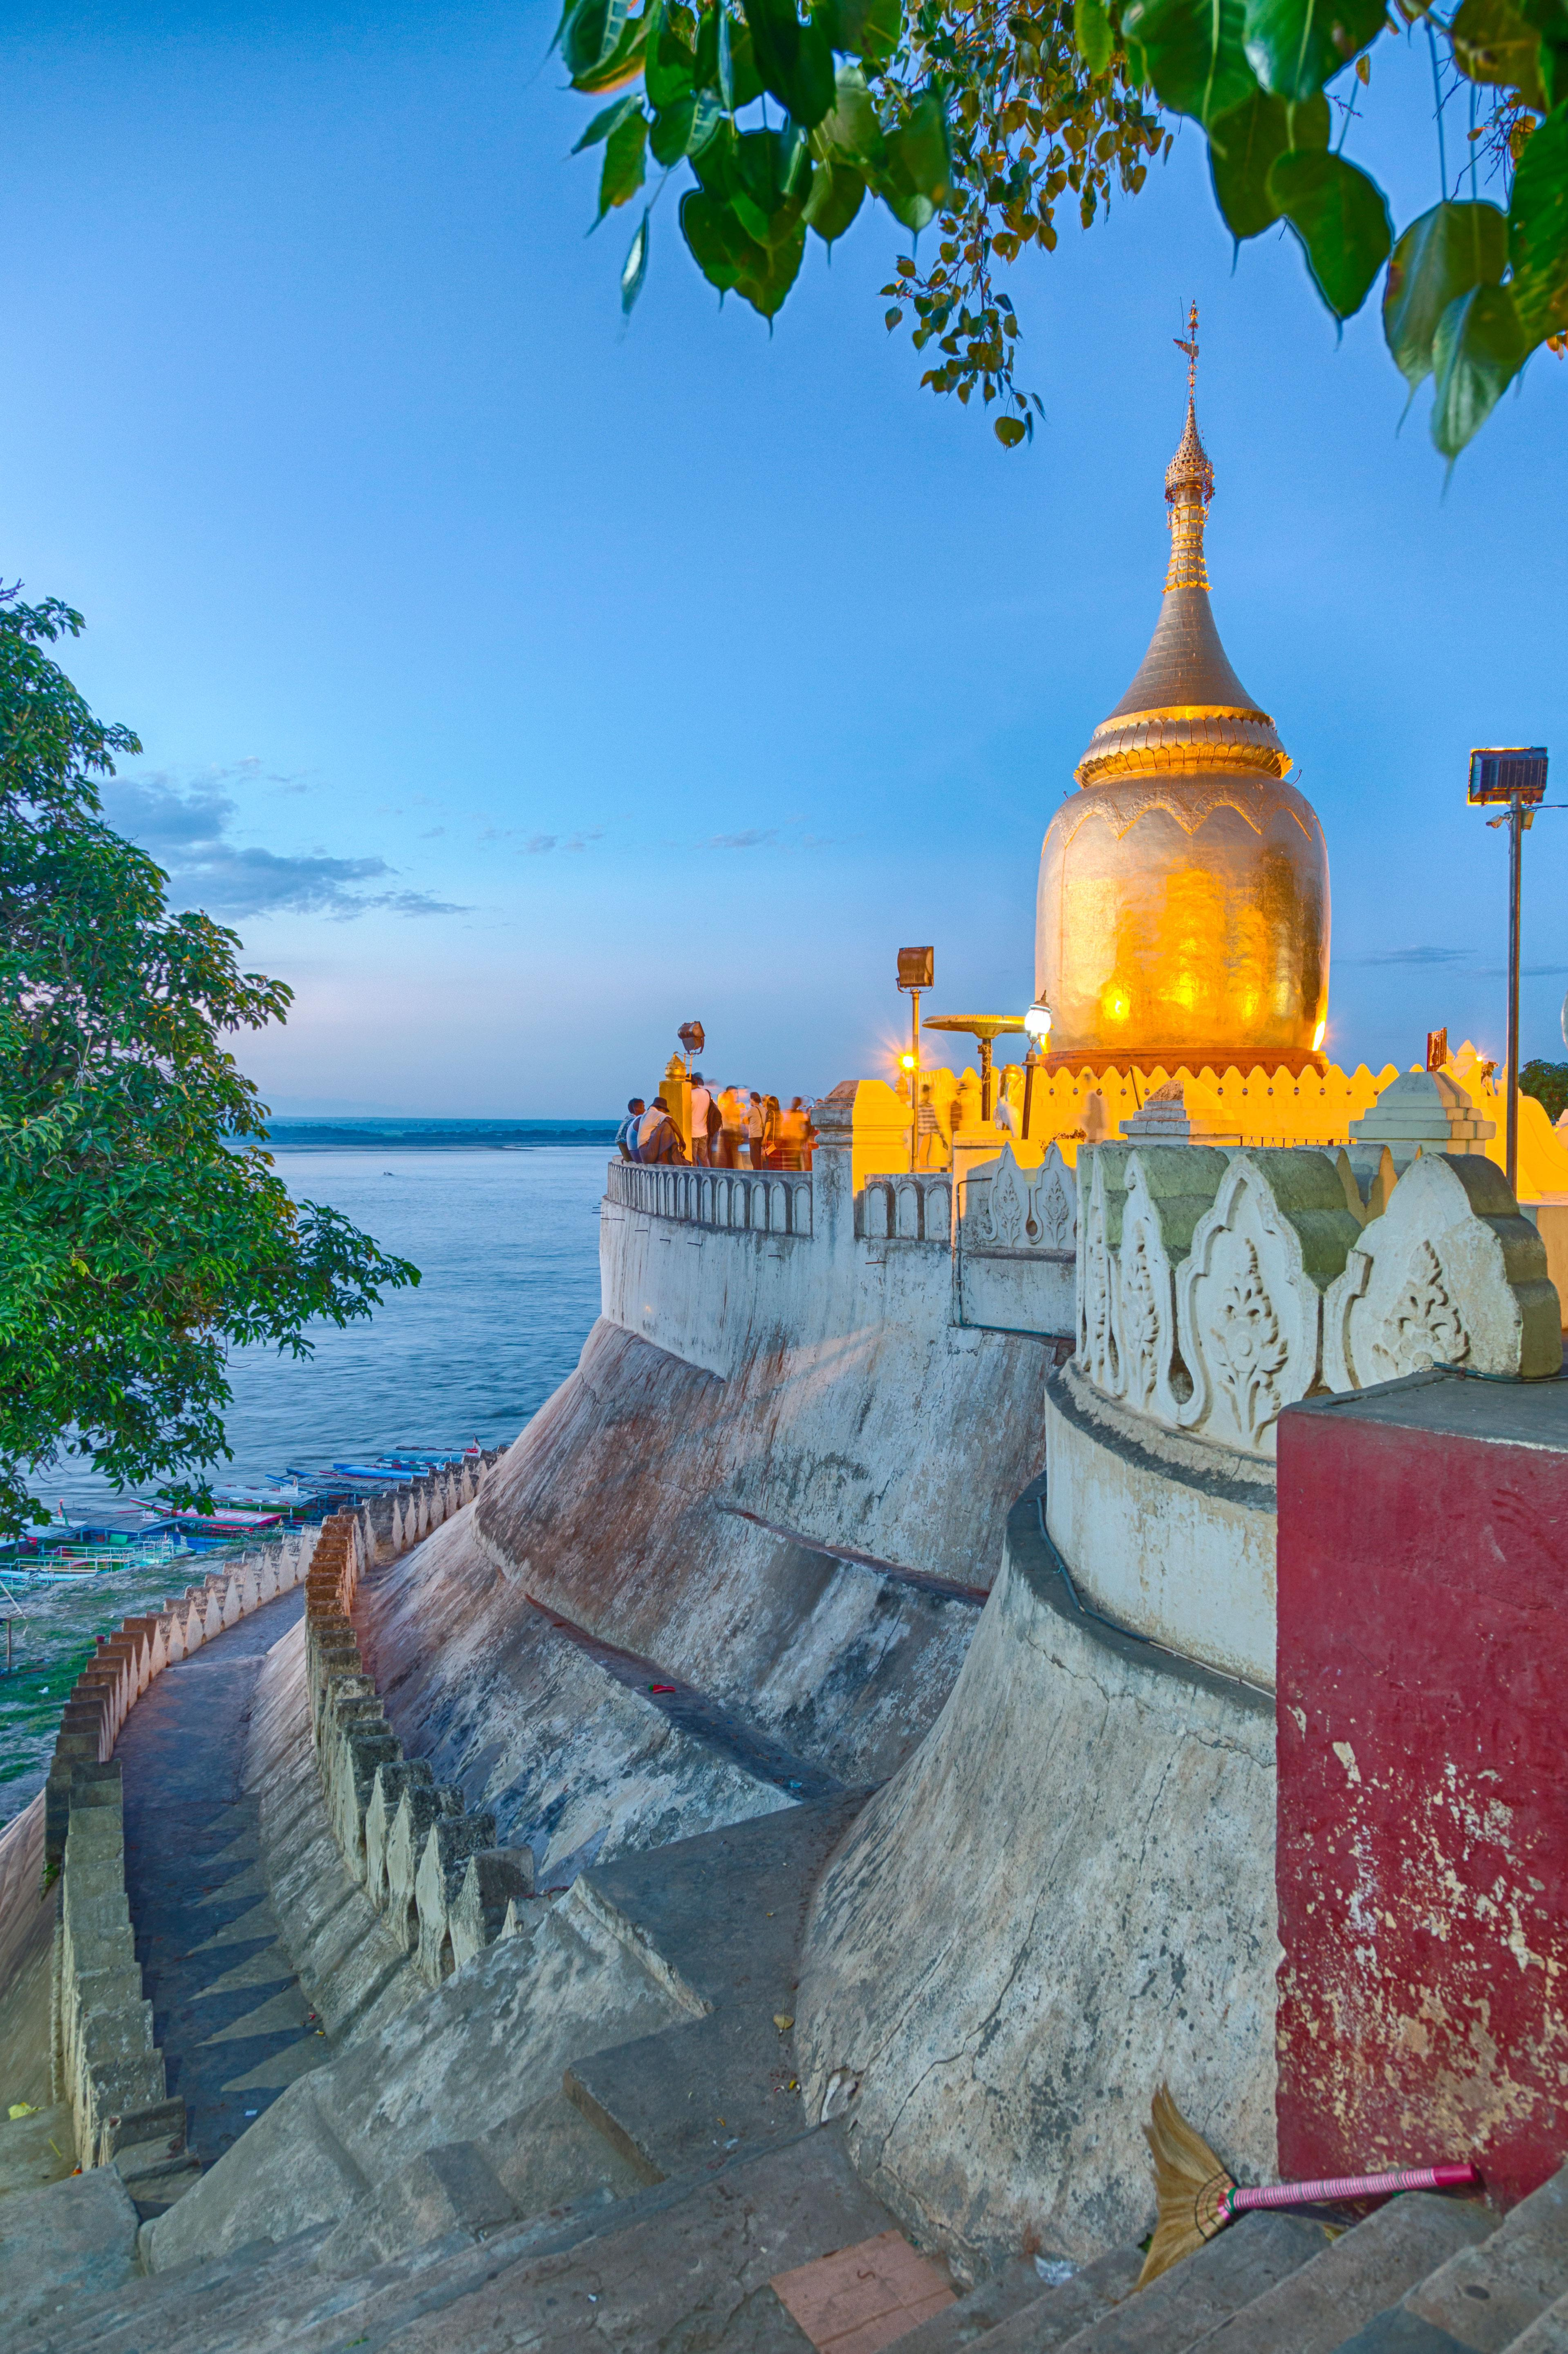 """<p>Like with Cuba, visitors are clamoring for access to Myanmar (Burma) to witness this incredible destination before it is altered by modernity. Ships like the fabulous <a href=""""http://www.belmond.com/orcaella-myanmar/"""" rel=""""nofollow noopener"""" target=""""_blank"""" data-ylk=""""slk:Belmond Orcaella"""" class=""""link rapid-noclick-resp""""><strong>Belmond Orcaella</strong></a> or the <a href=""""http://www.belmond.com/road-to-mandalay-myanmar/"""" rel=""""nofollow noopener"""" target=""""_blank"""" data-ylk=""""slk:Road to Mandalay"""" class=""""link rapid-noclick-resp""""><strong>Road to Mandalay</strong></a> can still whisk you to magical places like Bagan and to unmarked villages along the Irrawaddy River where souvenir shops don't exist. Guests stop in rural, remote areas peppered with exotic golden pagodas and warm, wonderful people who rarely see western tourists.</p>"""